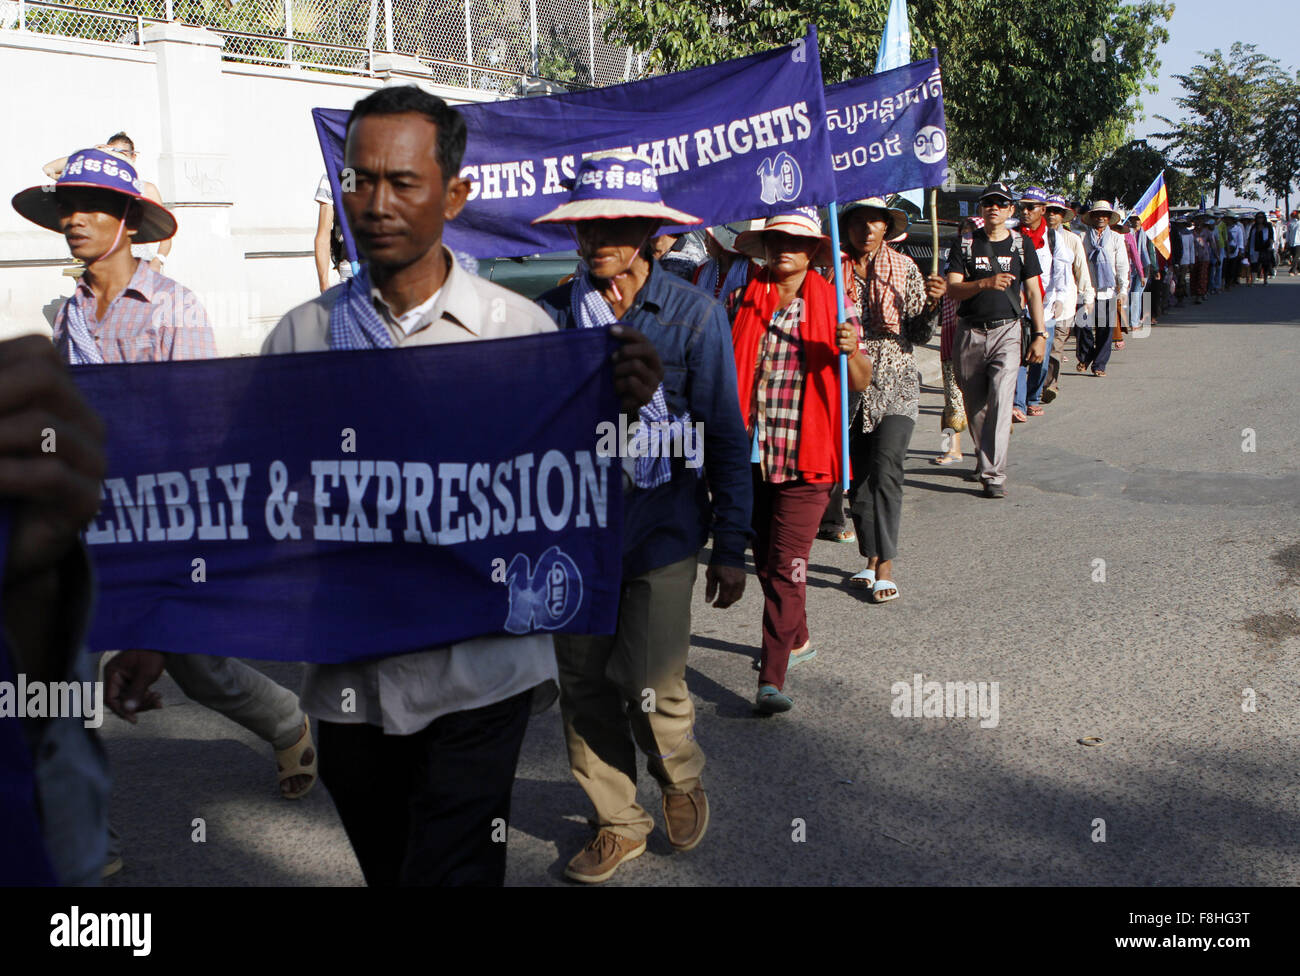 Phnom Penh, Cambodia. 10th Dec, 2015. Activists march through streets on the Human Rights Day in Phnom Penh, Cambodia, - Stock Image